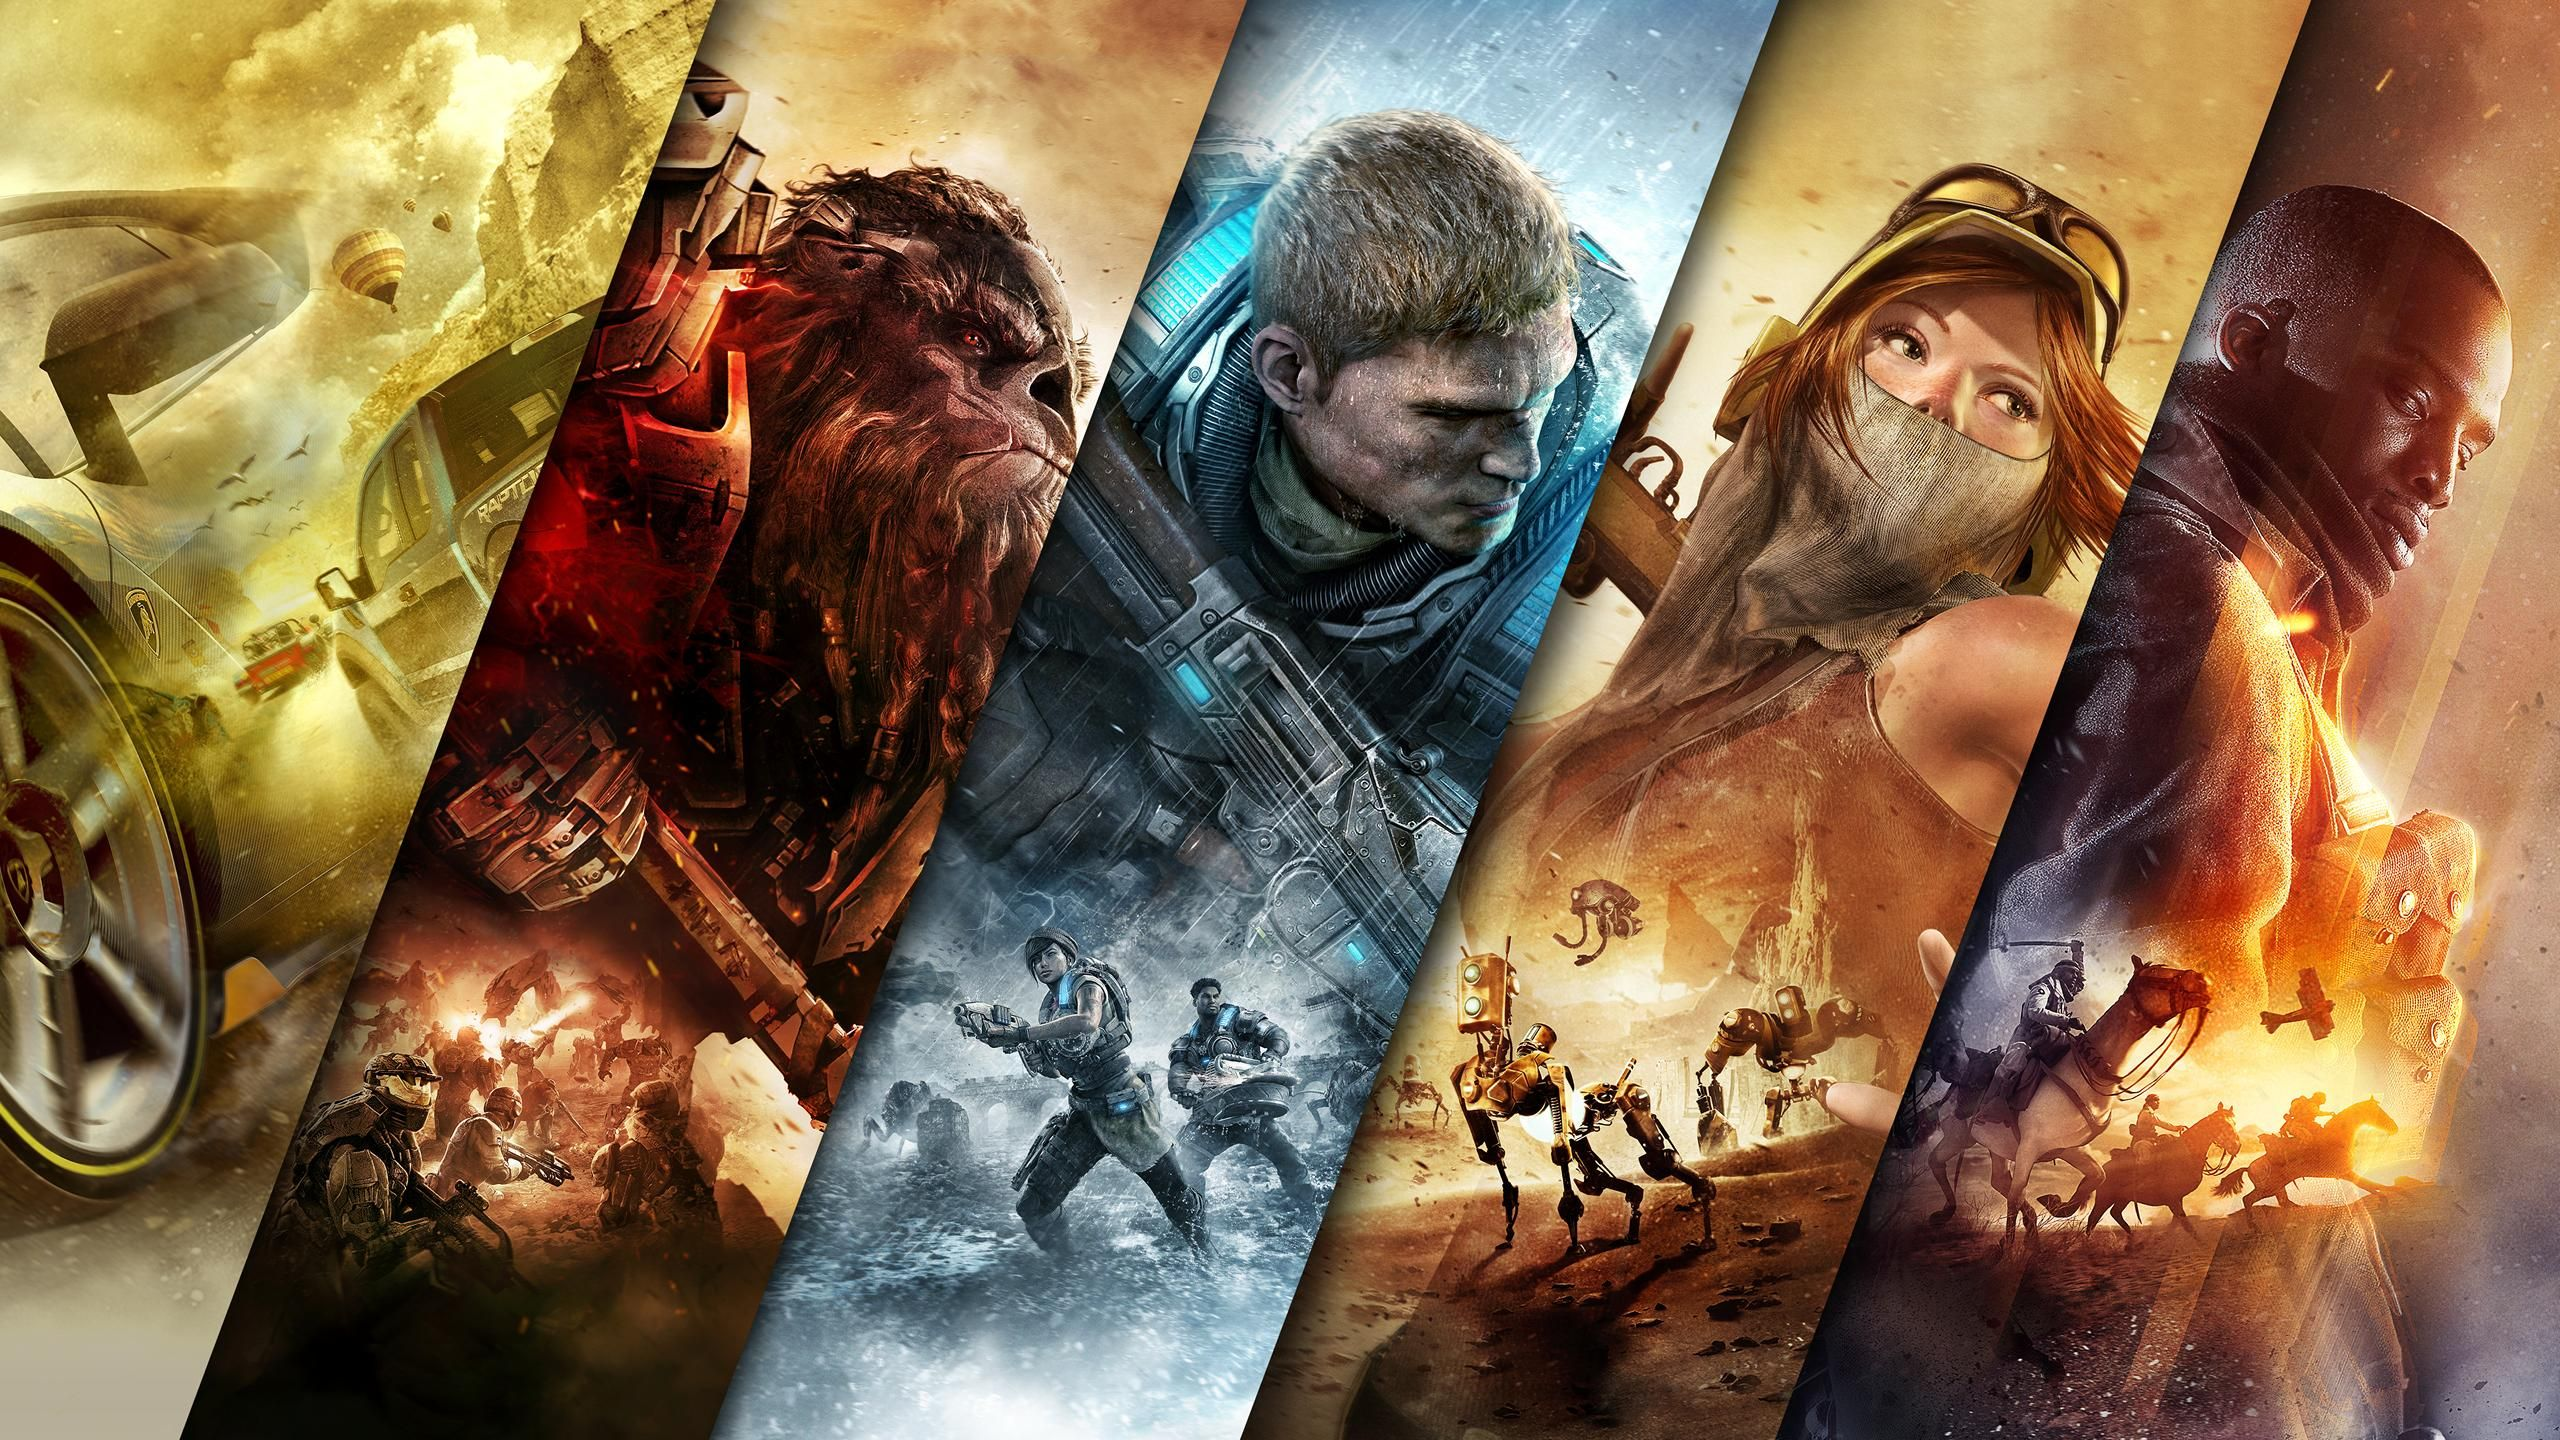 Ps4 Game Wallpaper Google Search In 2020 Free Xbox One Games Xbox One Games Xbox